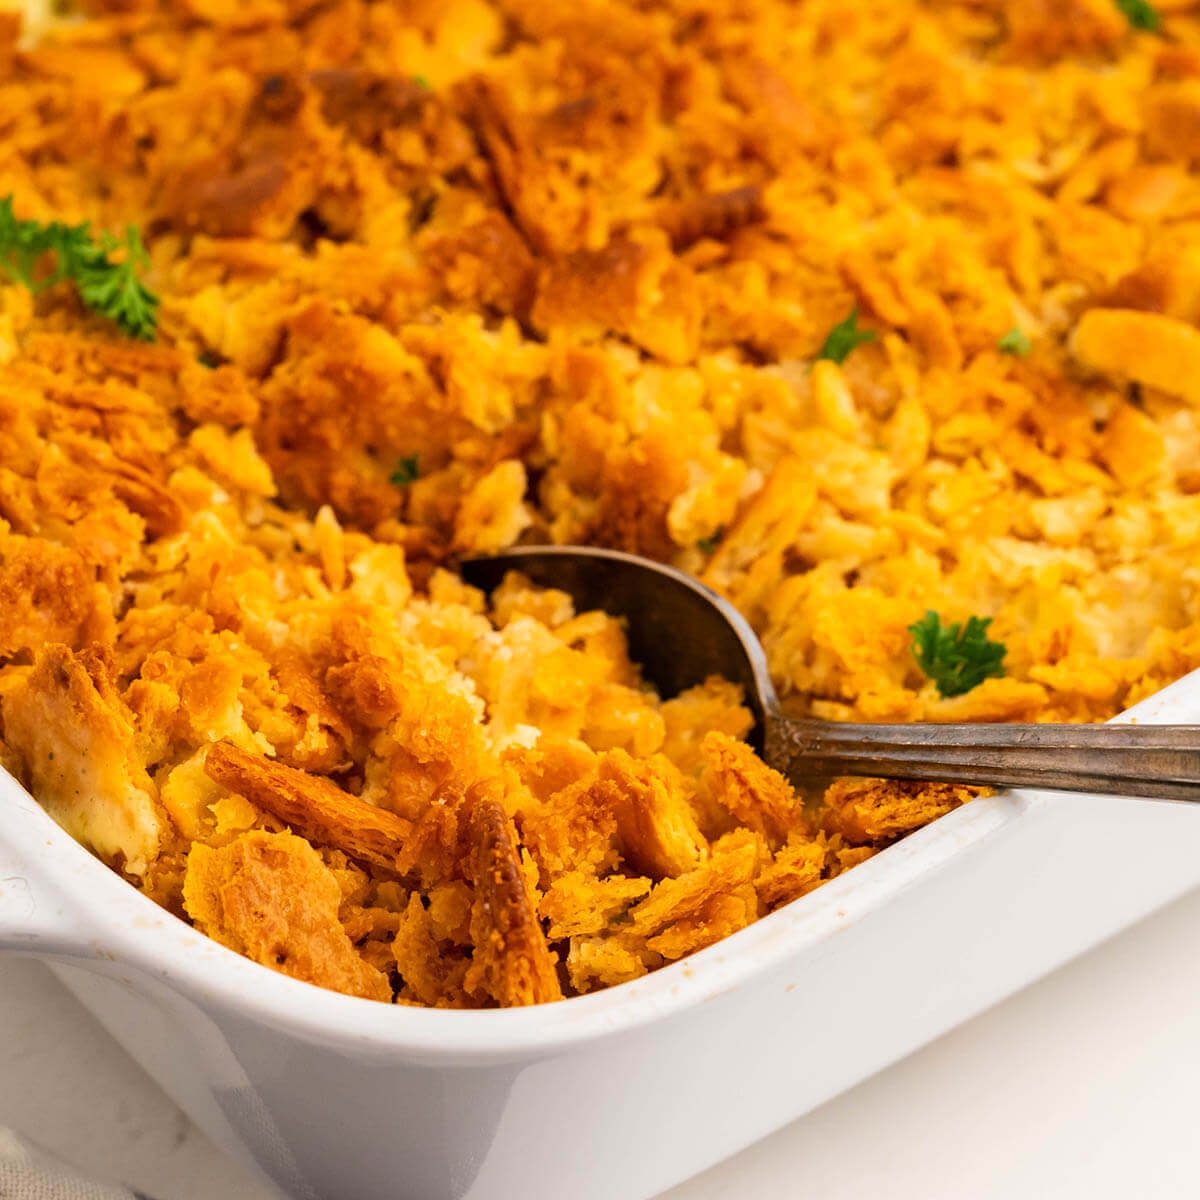 Ritzy chicken casserole in dish with serving spoon.